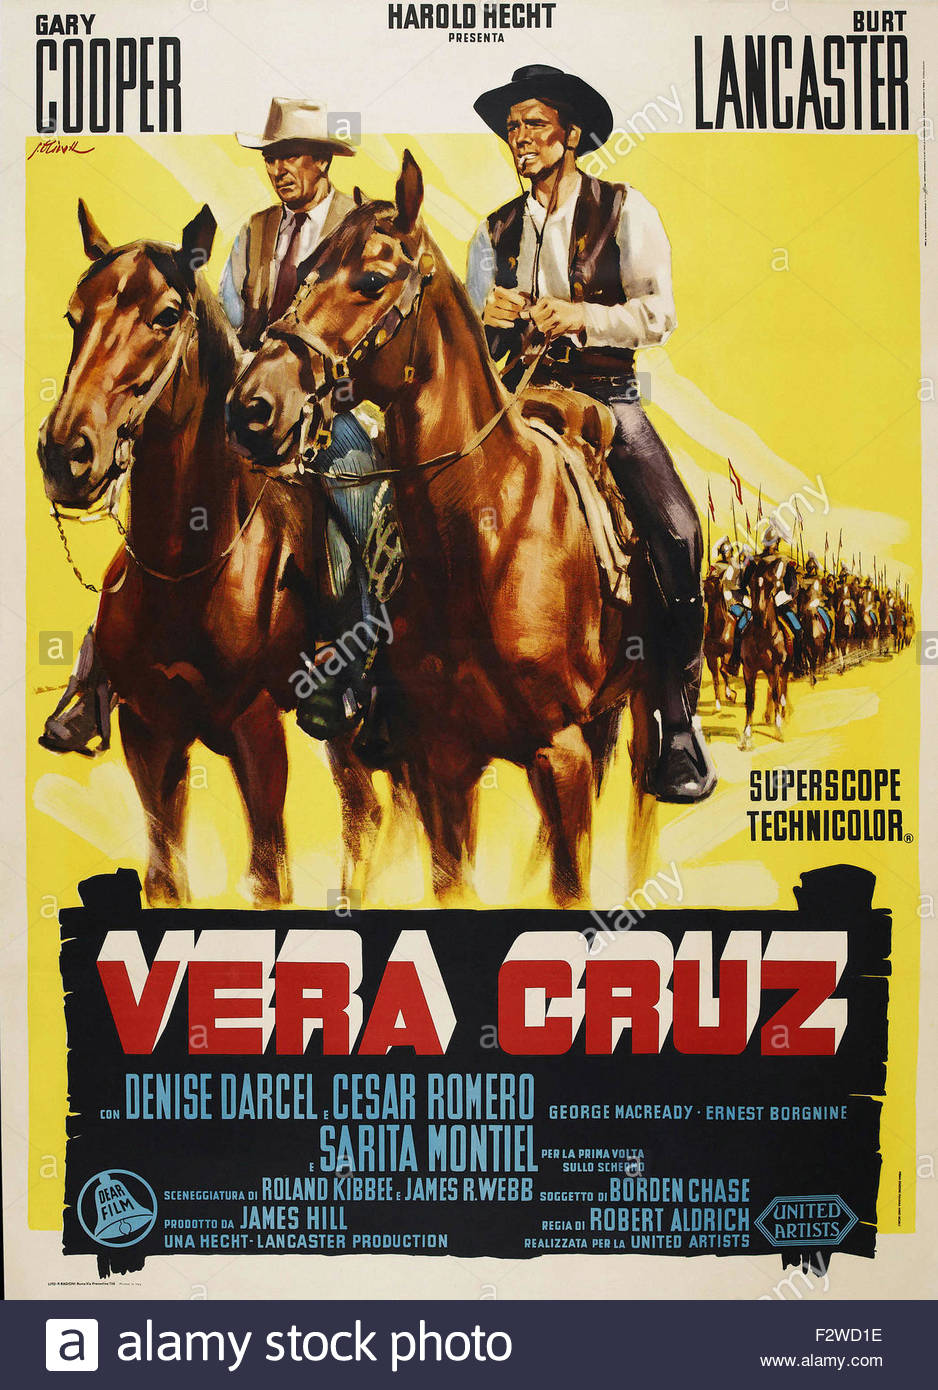 vera-cruz-1954-movie-poster-F2WD1E.jpg